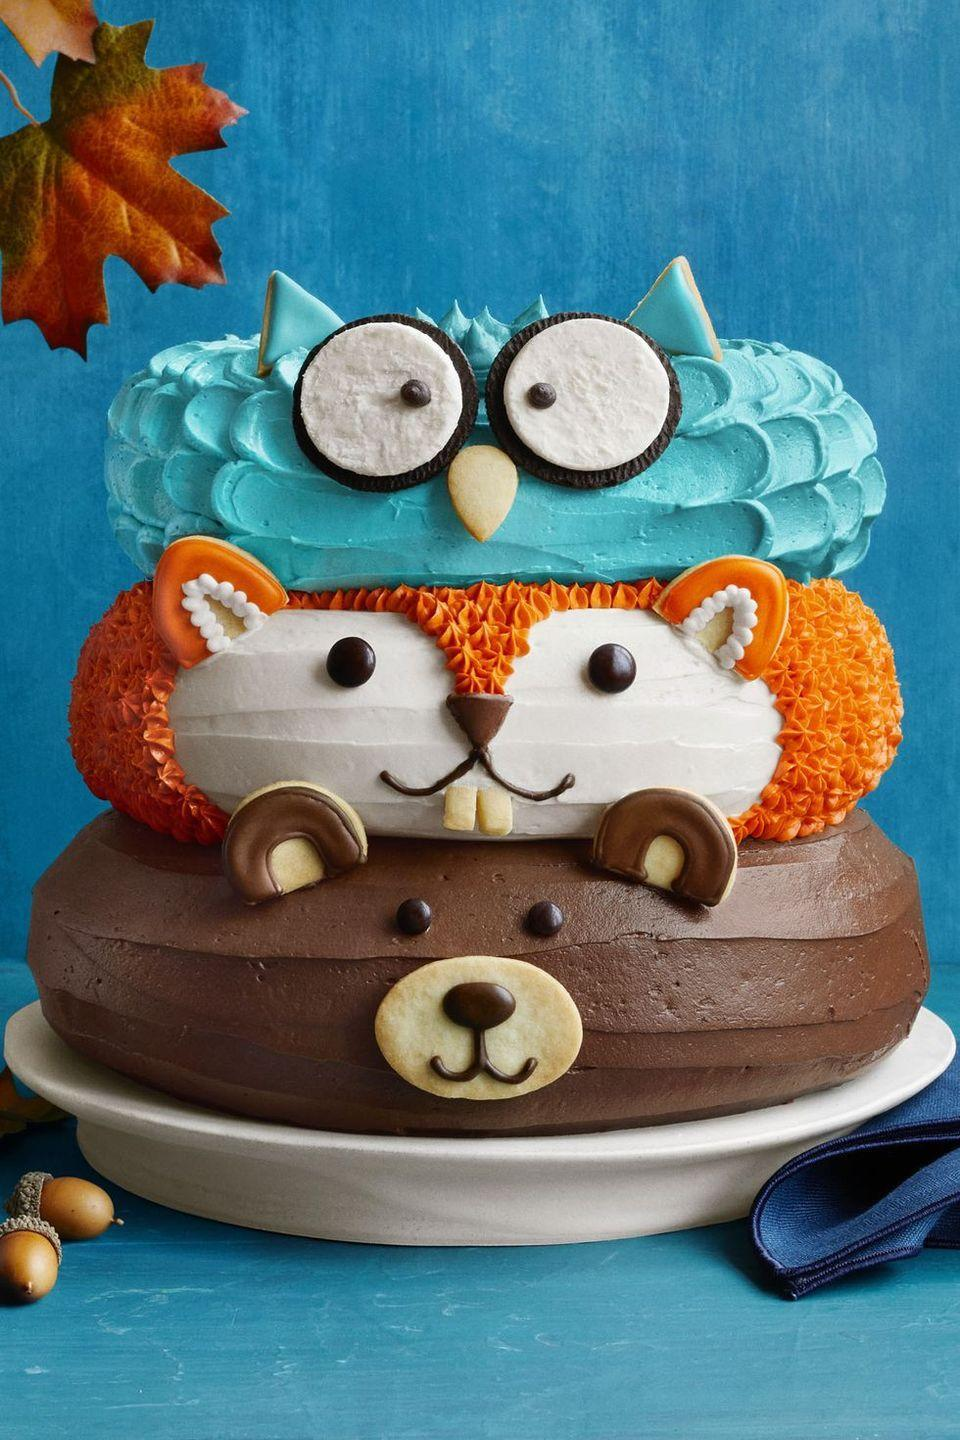 """<p>This might look complicated, but it's really not. After making three cakes, use buttercream to frost and candy and cookies to create their little faces. Too much? Try your hand at just one of these forest friends.</p><p><strong><em><a href=""""https://www.womansday.com/food-recipes/food-drinks/a24216714/forest-friends-cake-recipe/"""" rel=""""nofollow noopener"""" target=""""_blank"""" data-ylk=""""slk:Get the Forest Friends Cake recipe."""" class=""""link rapid-noclick-resp""""> Get the Forest Friends Cake recipe. </a></em></strong></p>"""